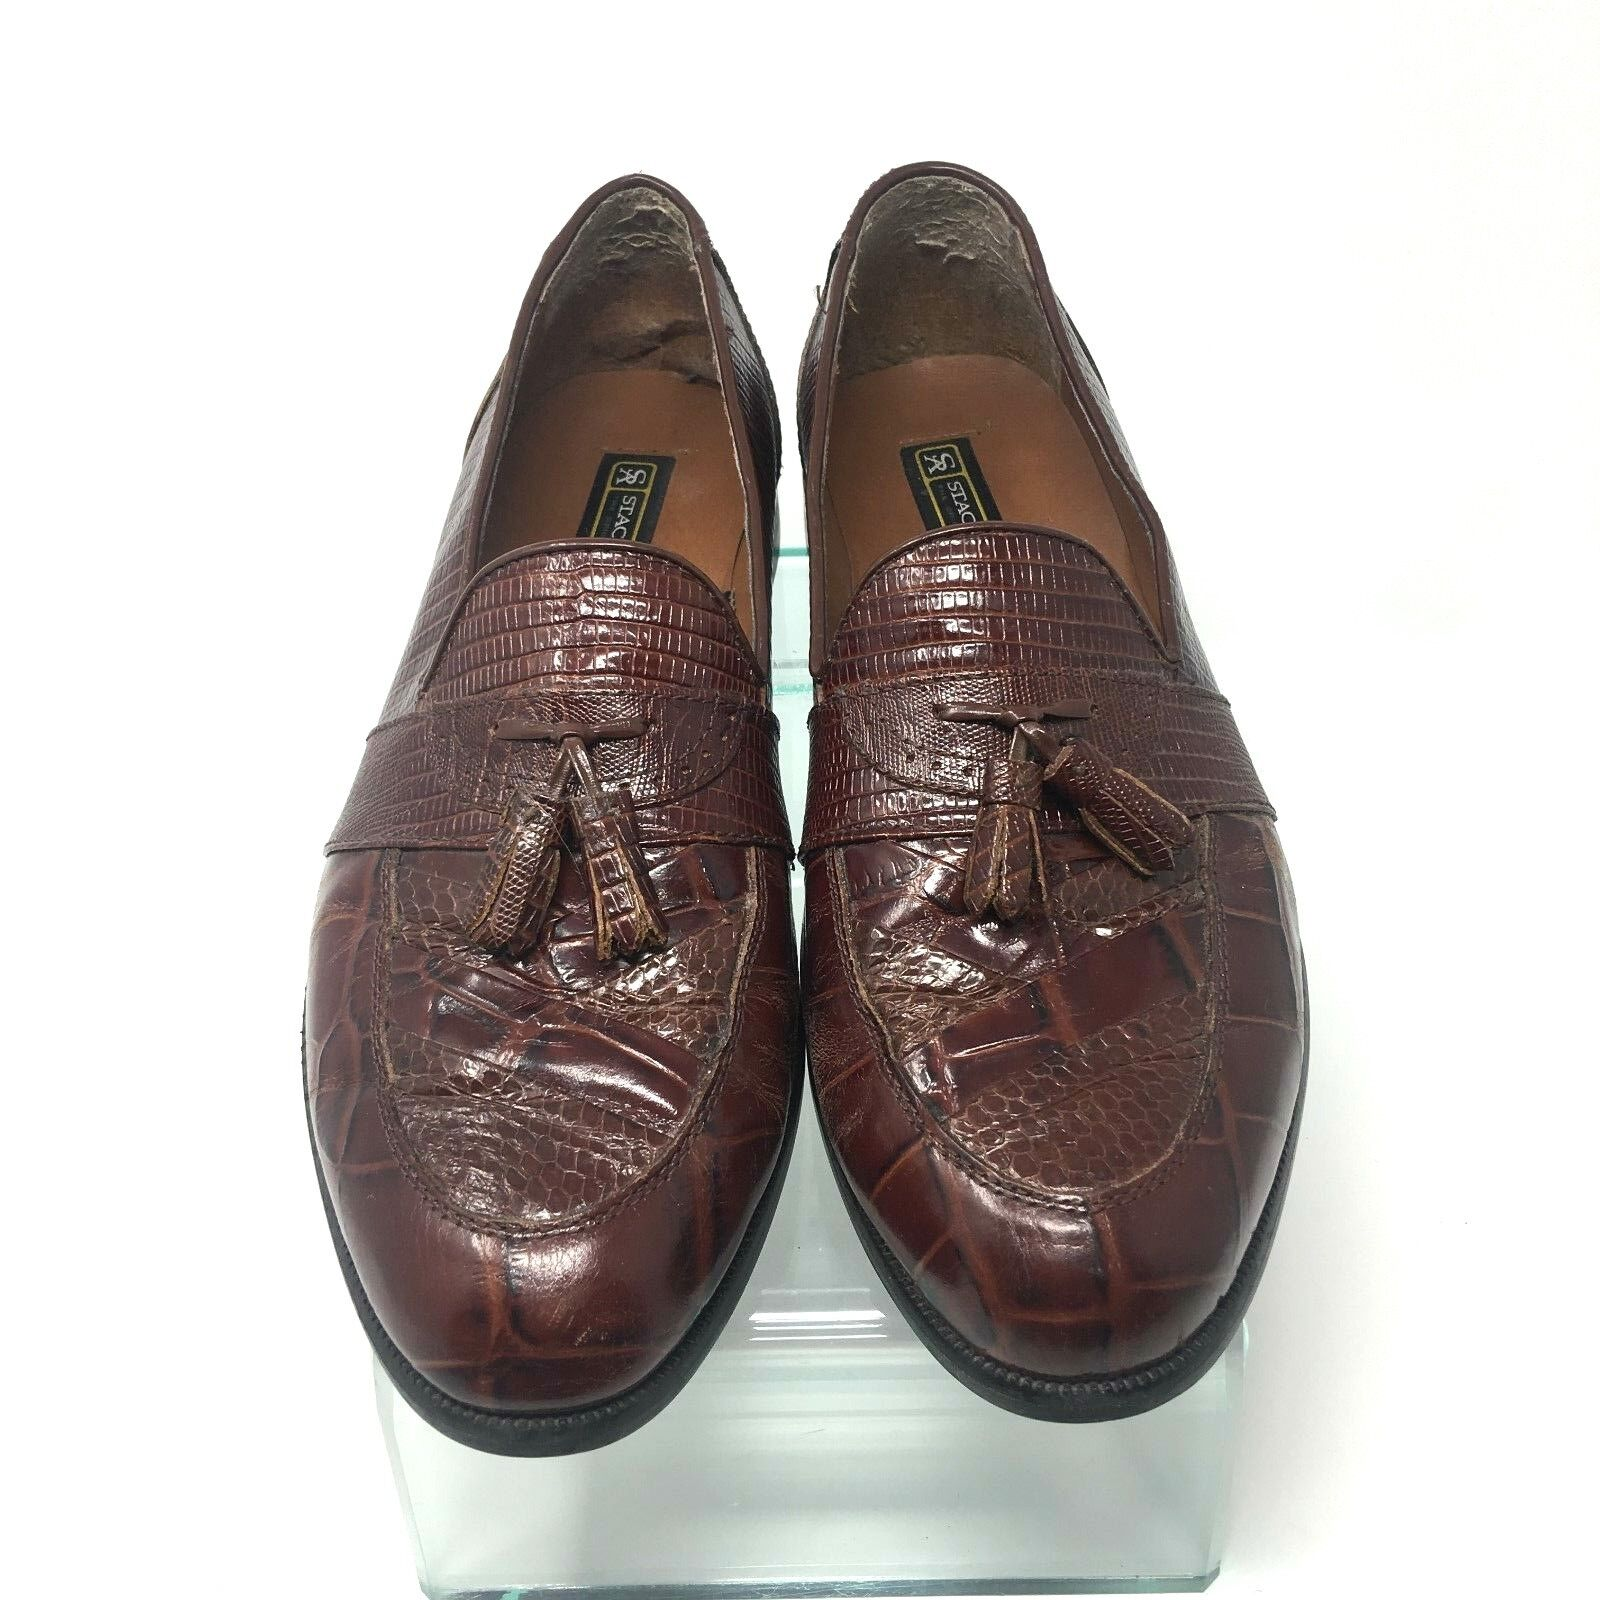 Stacy Adams Mens Snakeskin Tassel Dress shoes Size 10.5M 23121-03 EUC